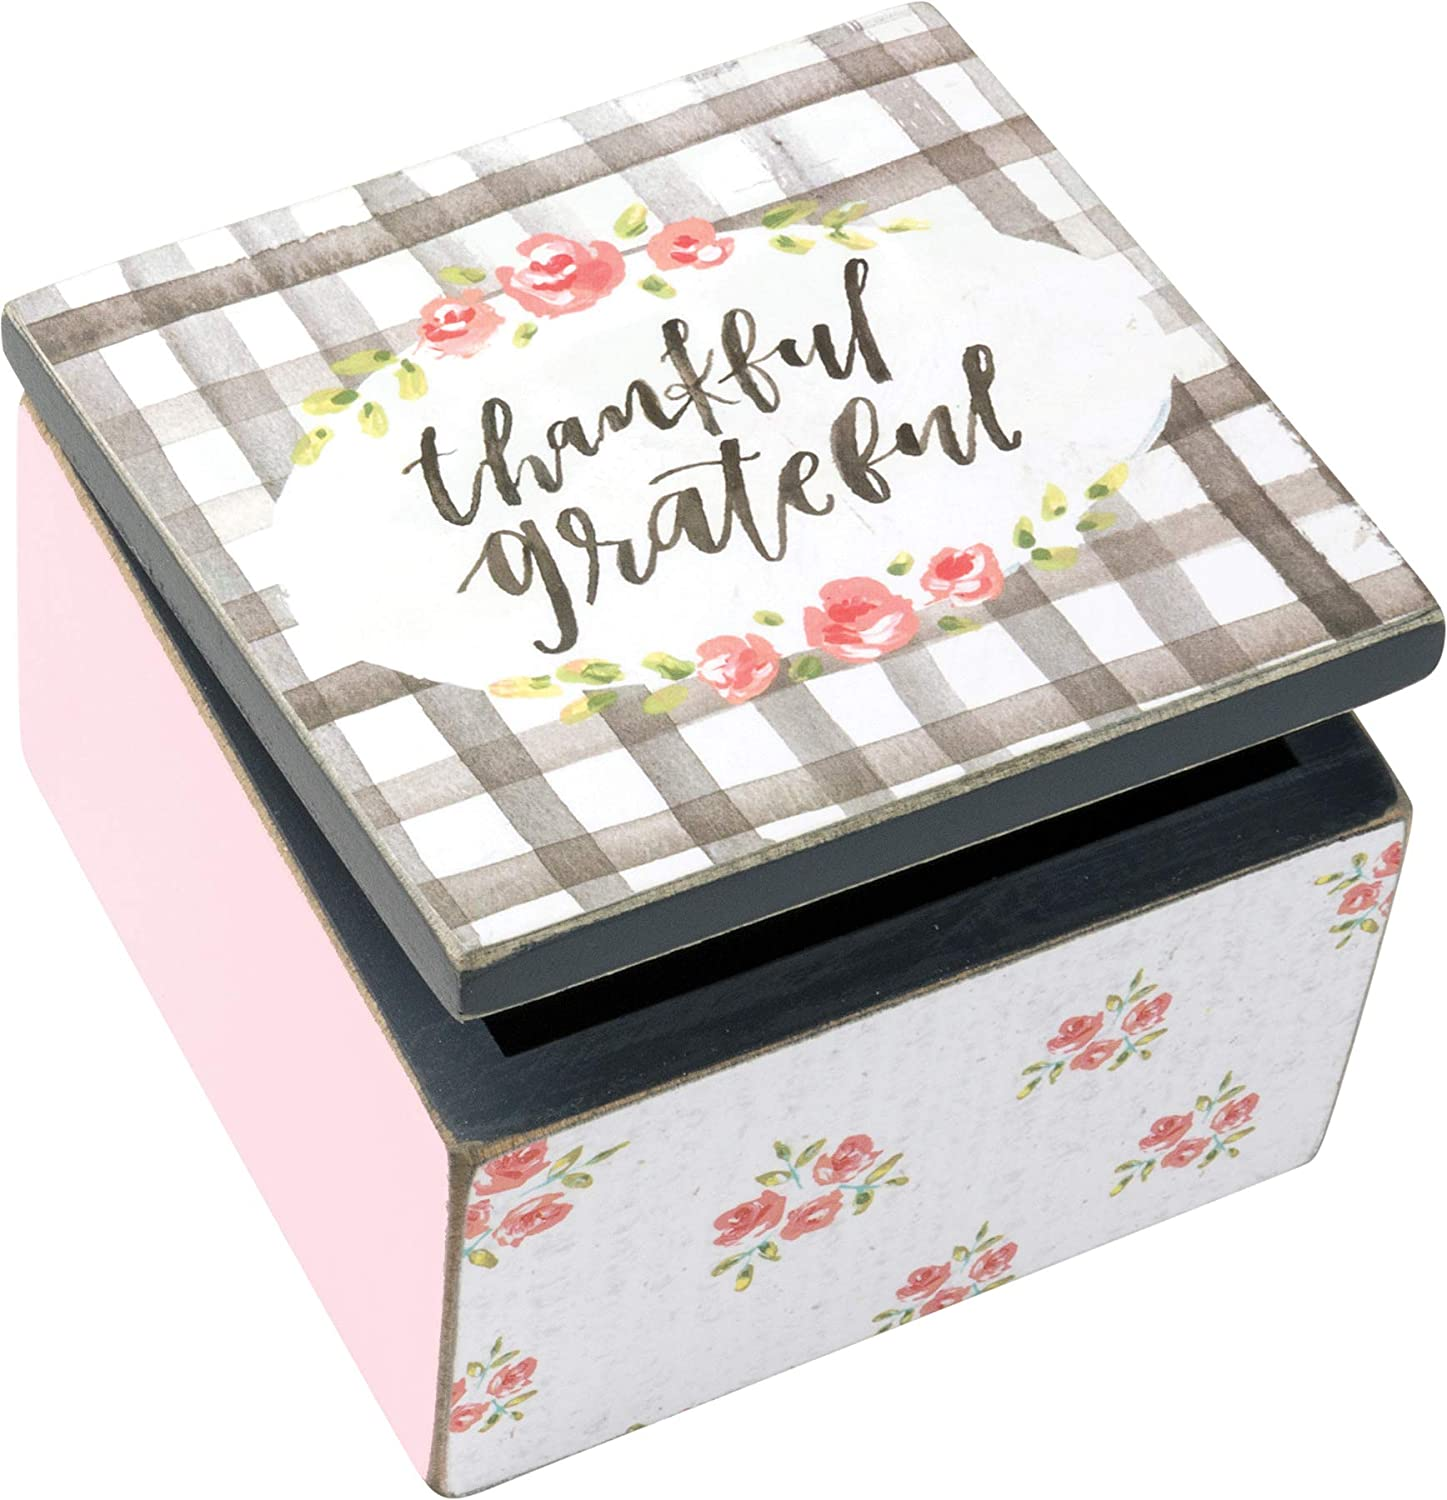 Primitives by Kathy Inspirational Hinged Box, Thankful Grateful